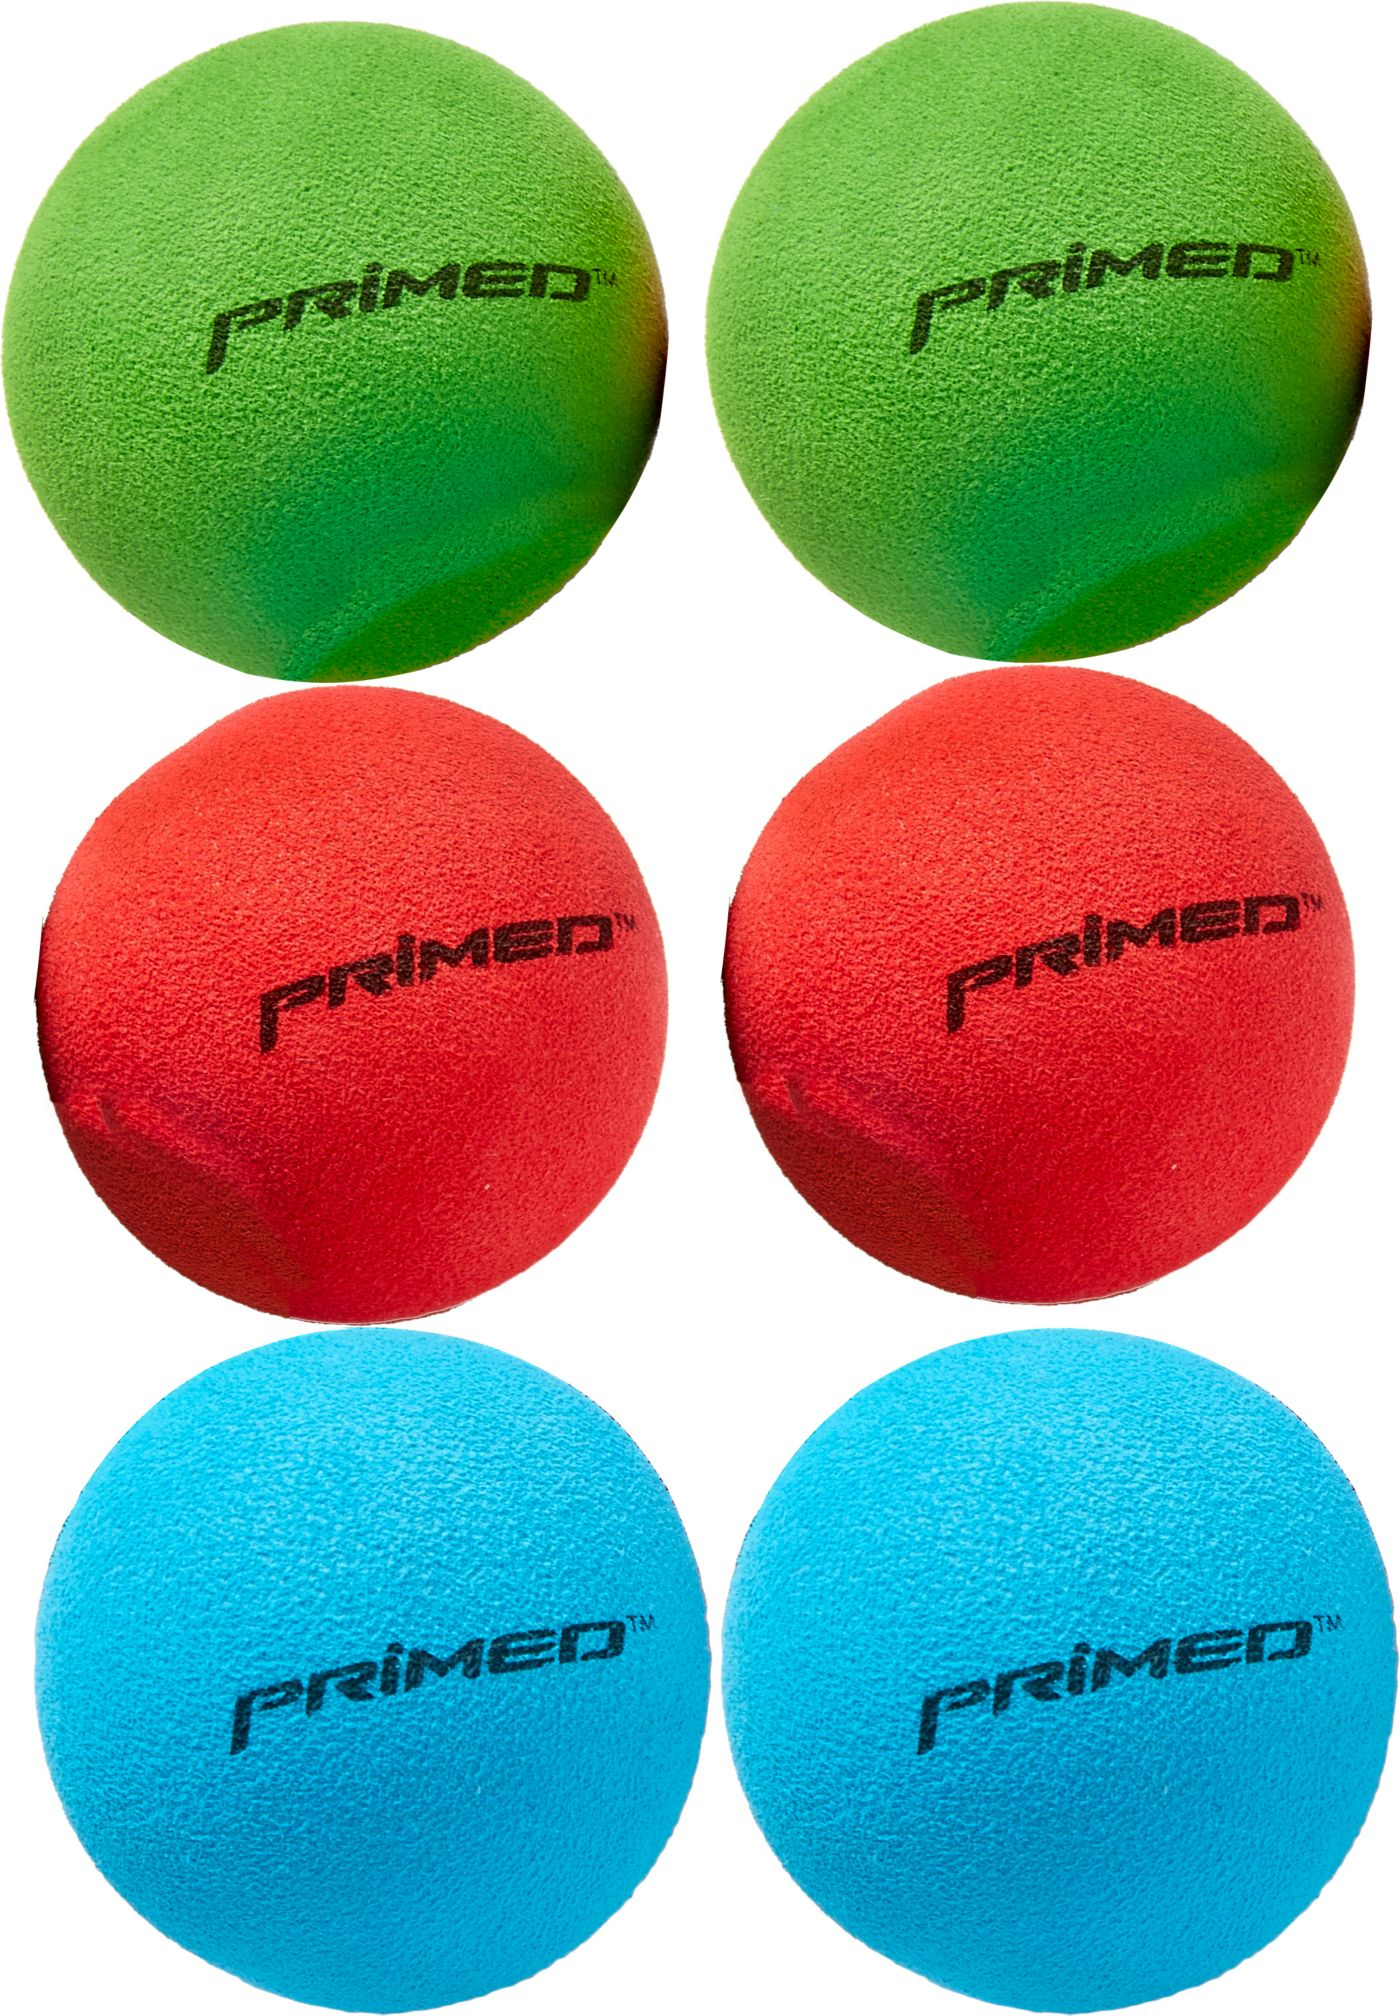 PRIMED Knee Hockey Balls - 6 Pack